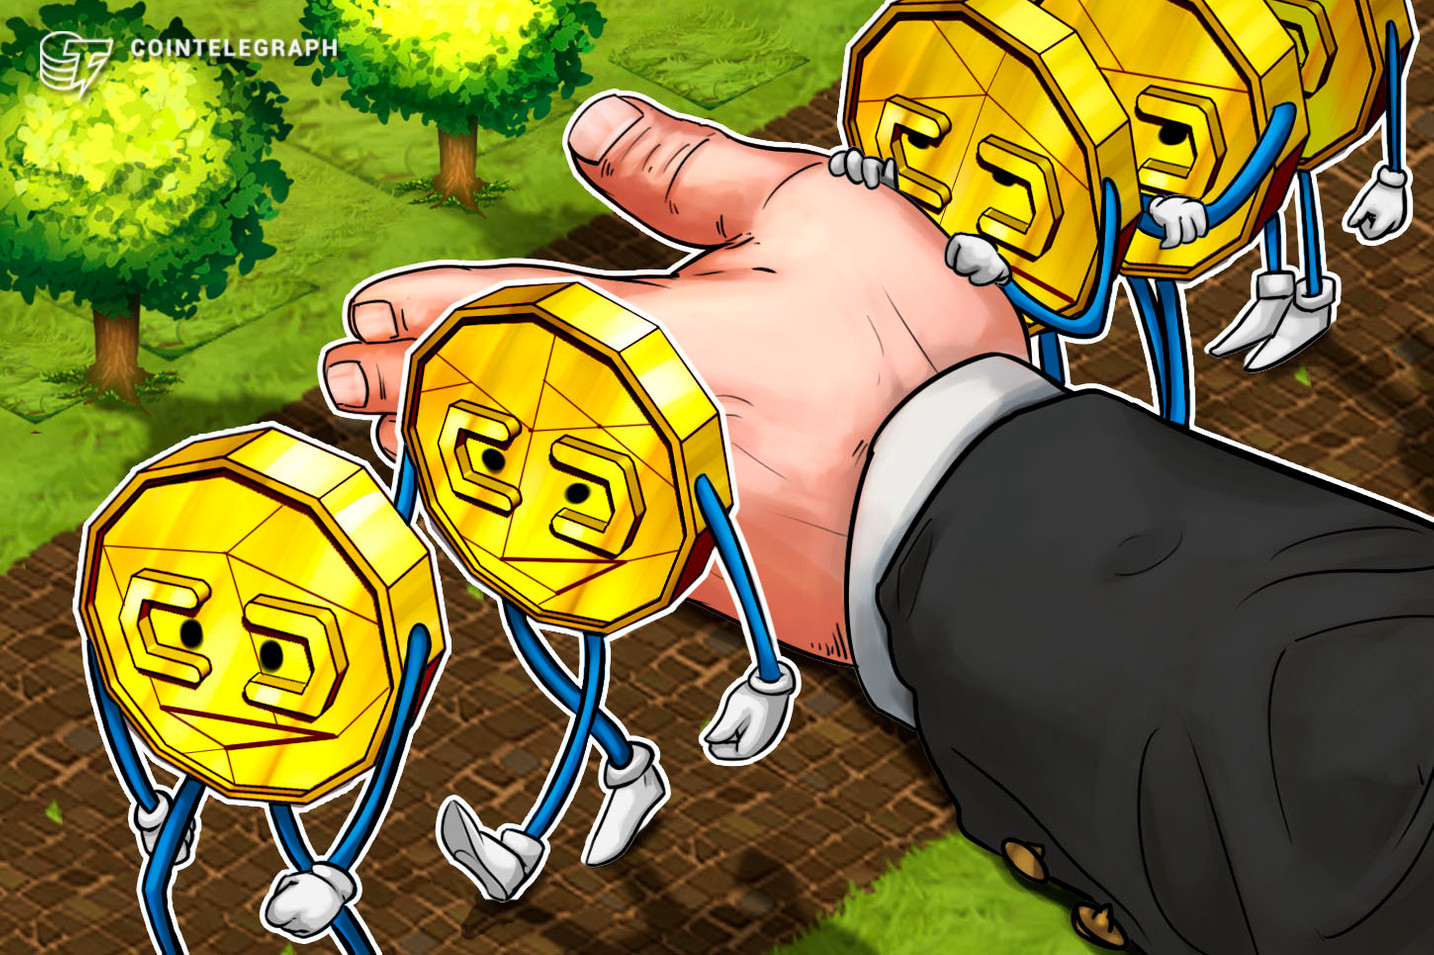 Binance to cease operations in Ontario following regulatory crackdown